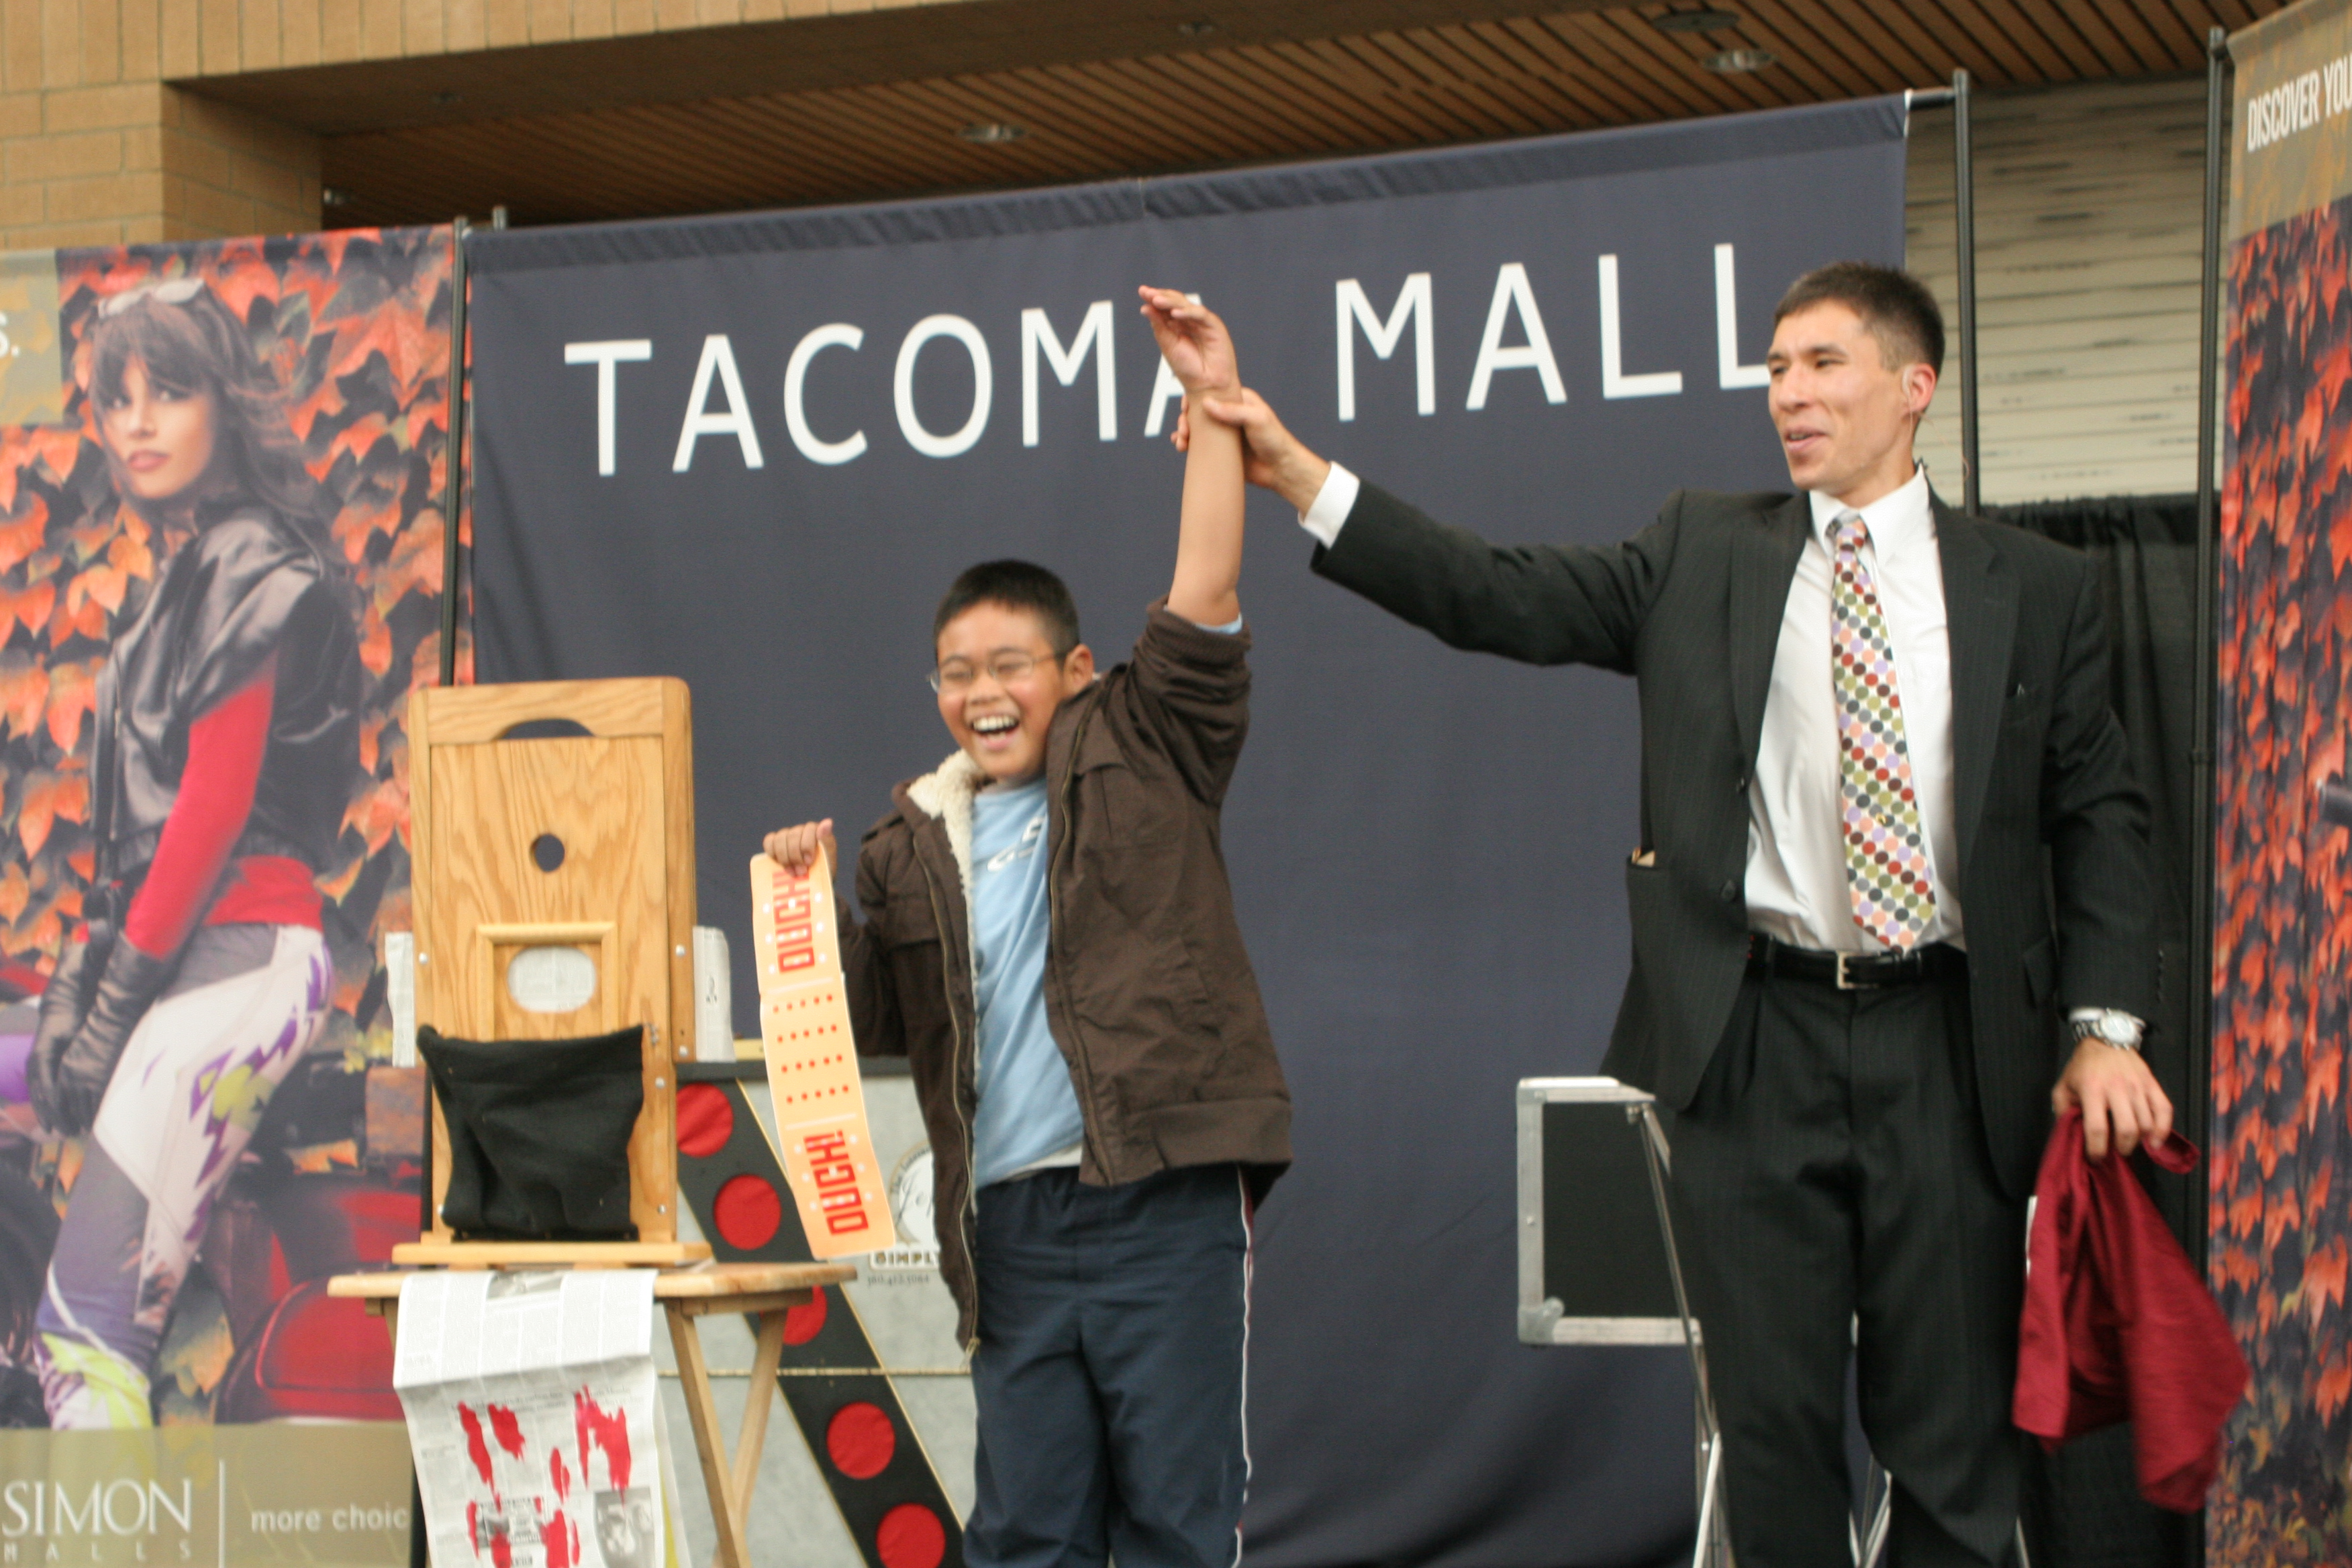 Family Night Magic Shows for schools, fetivals, fairs, and events throughout Washington state